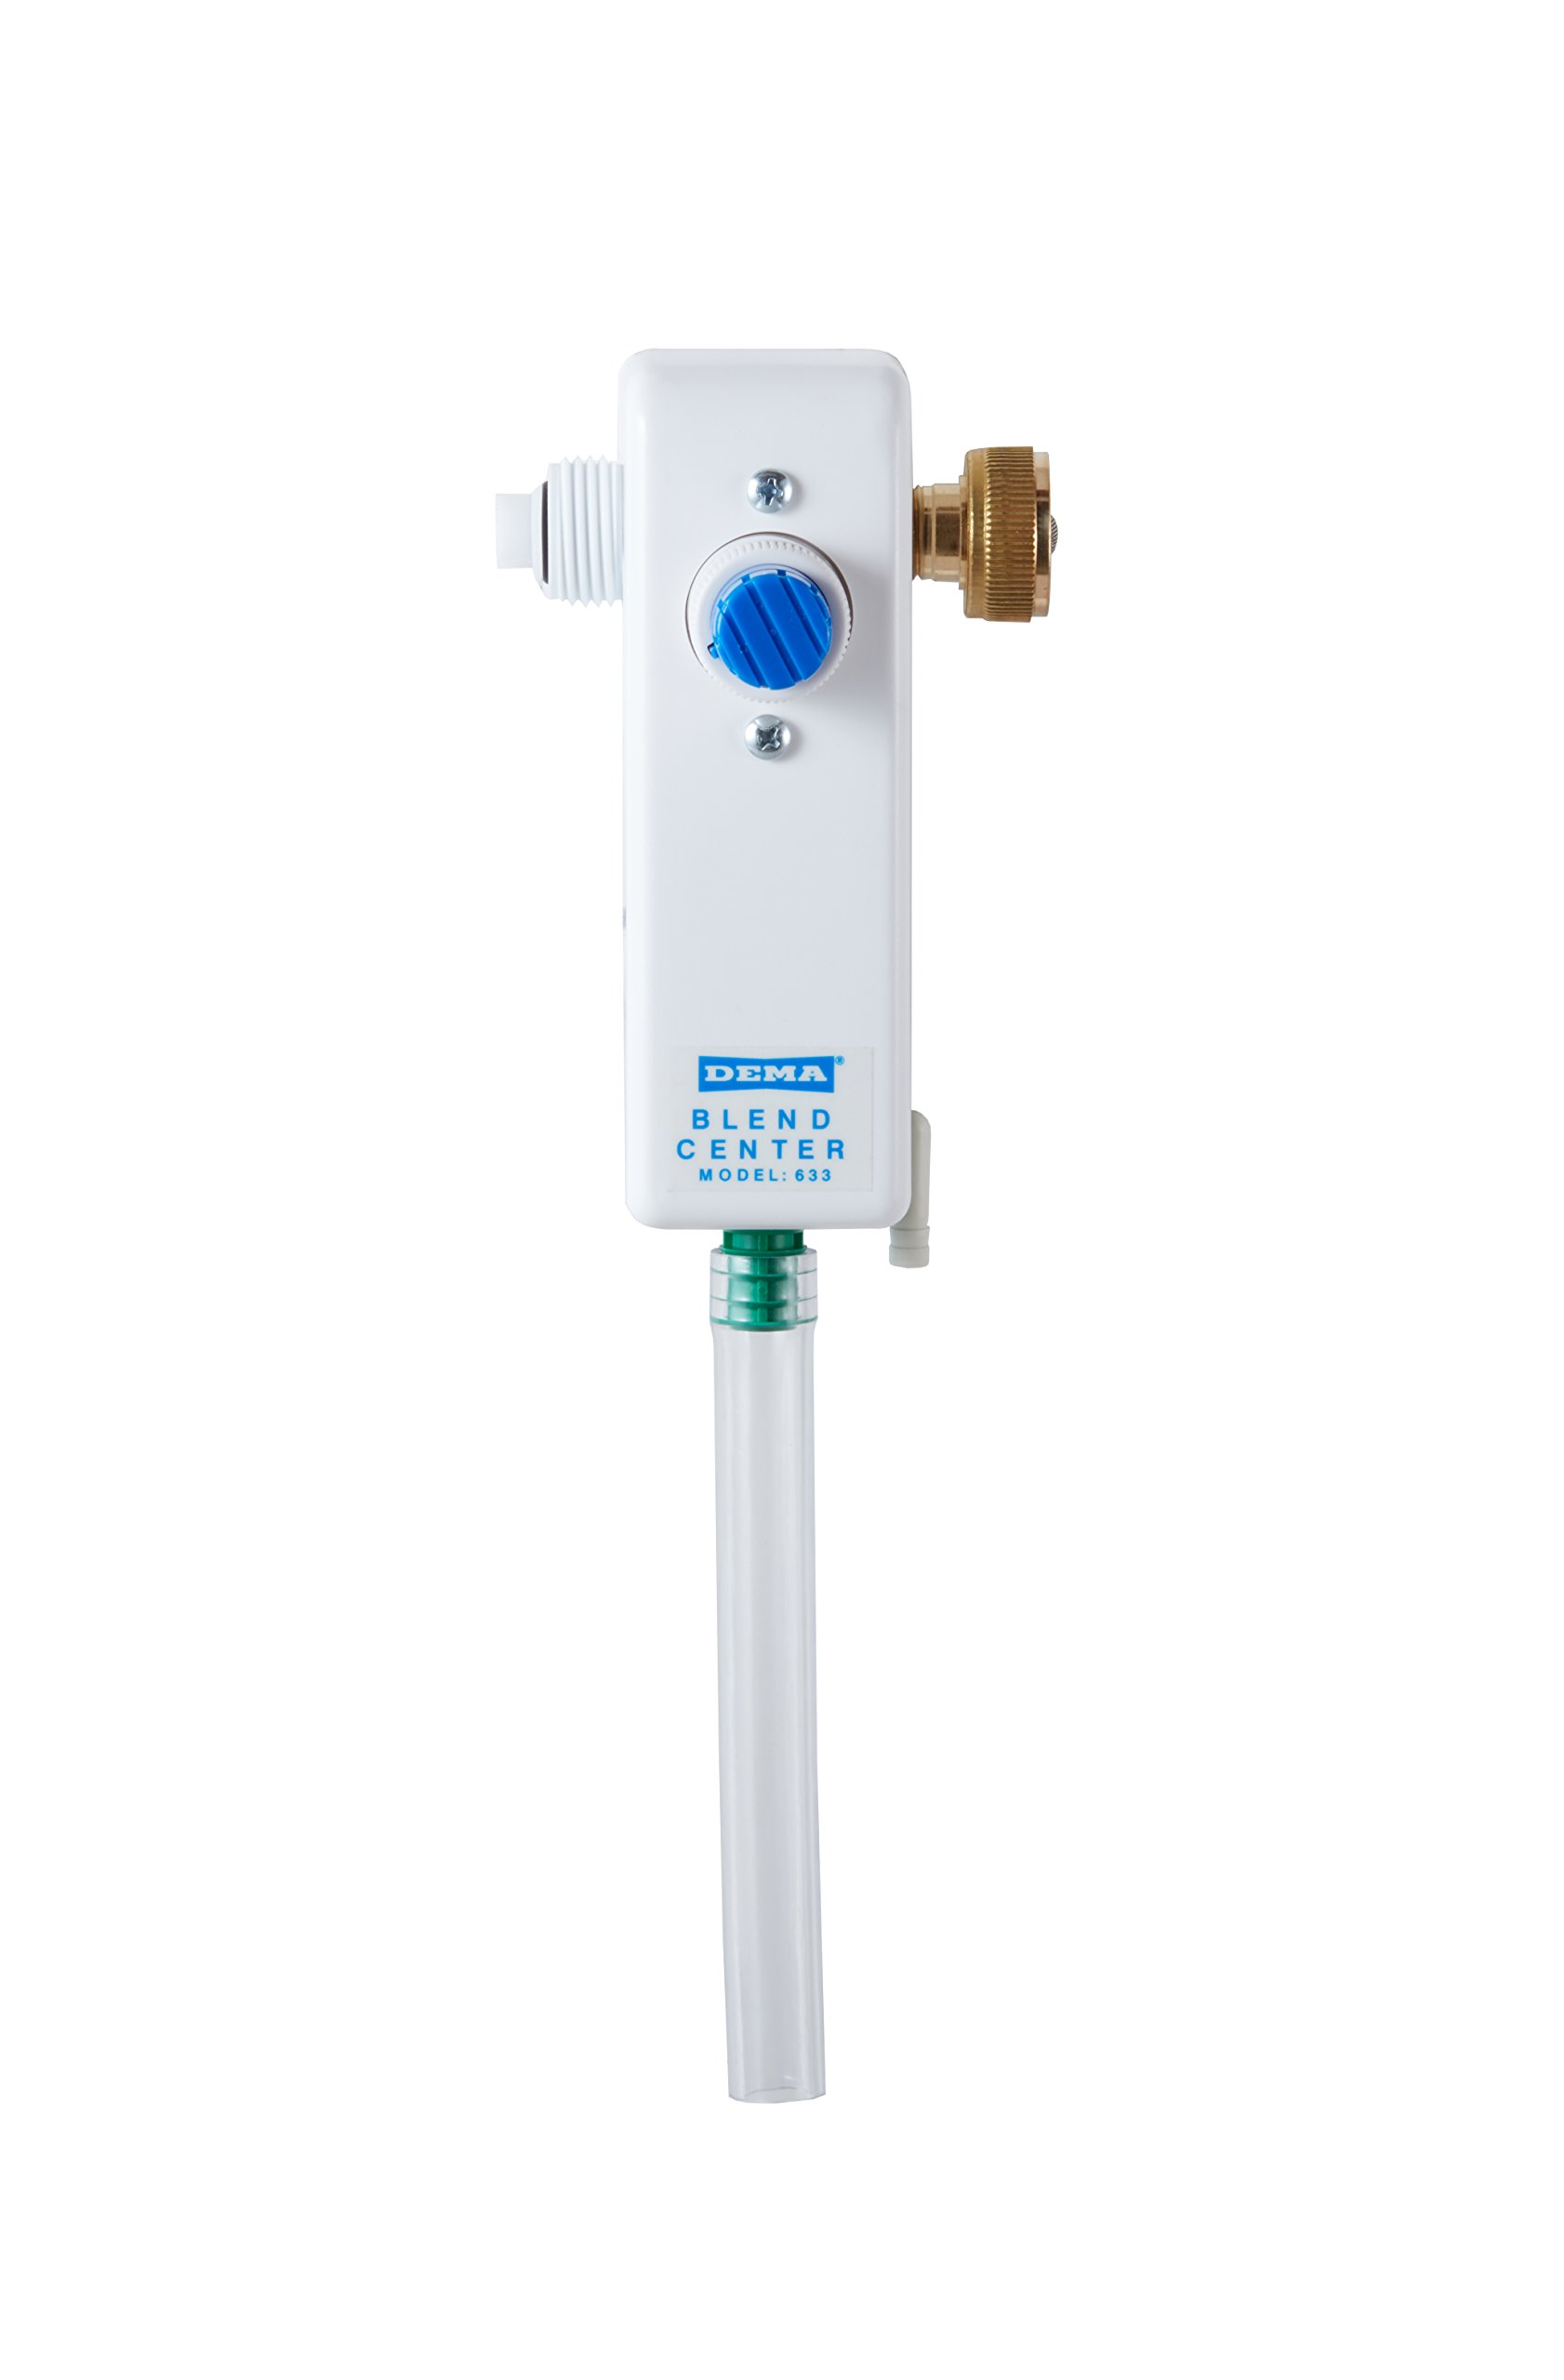 Blend Center Chemical Dilution Control Dispenser, Great for Filling Spray Bottles and Hand Buckets